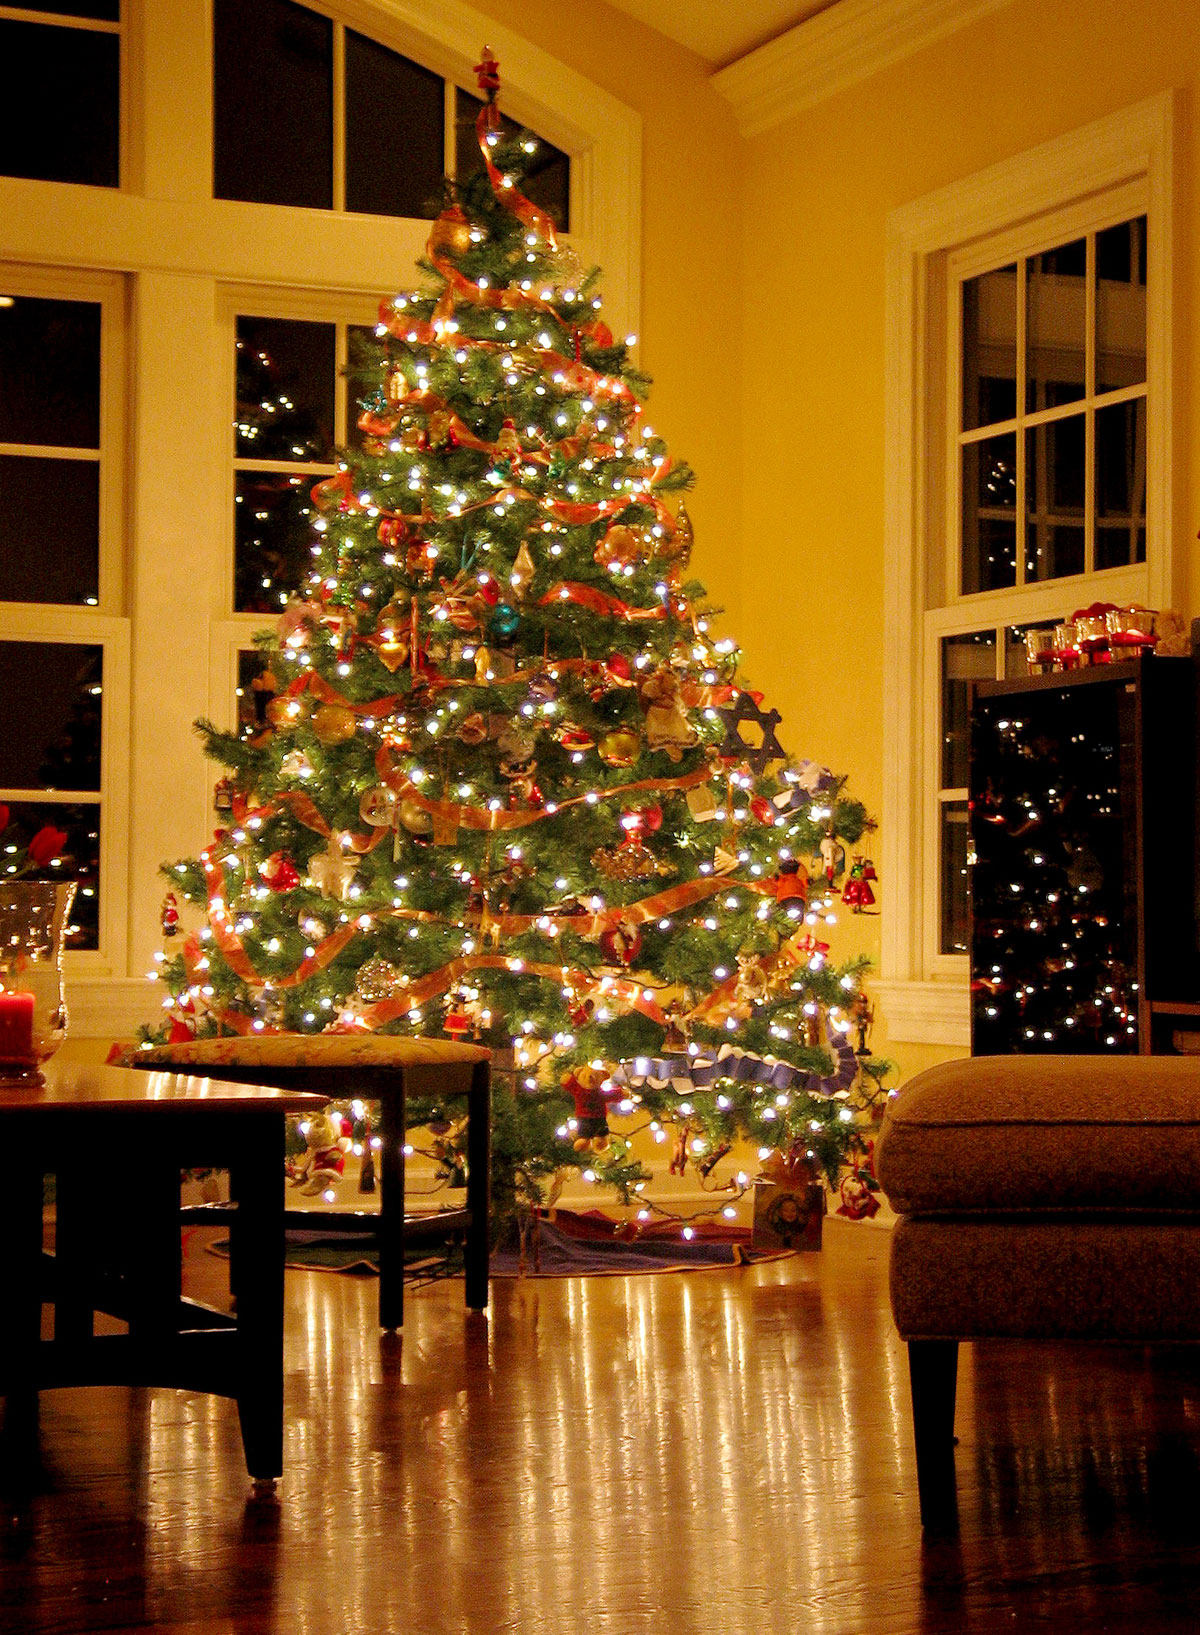 National Christmas Tree Day - day for the beloved Christmas Tree that we put up and decorate. #ChristmasTree #ChristmasTreeDay